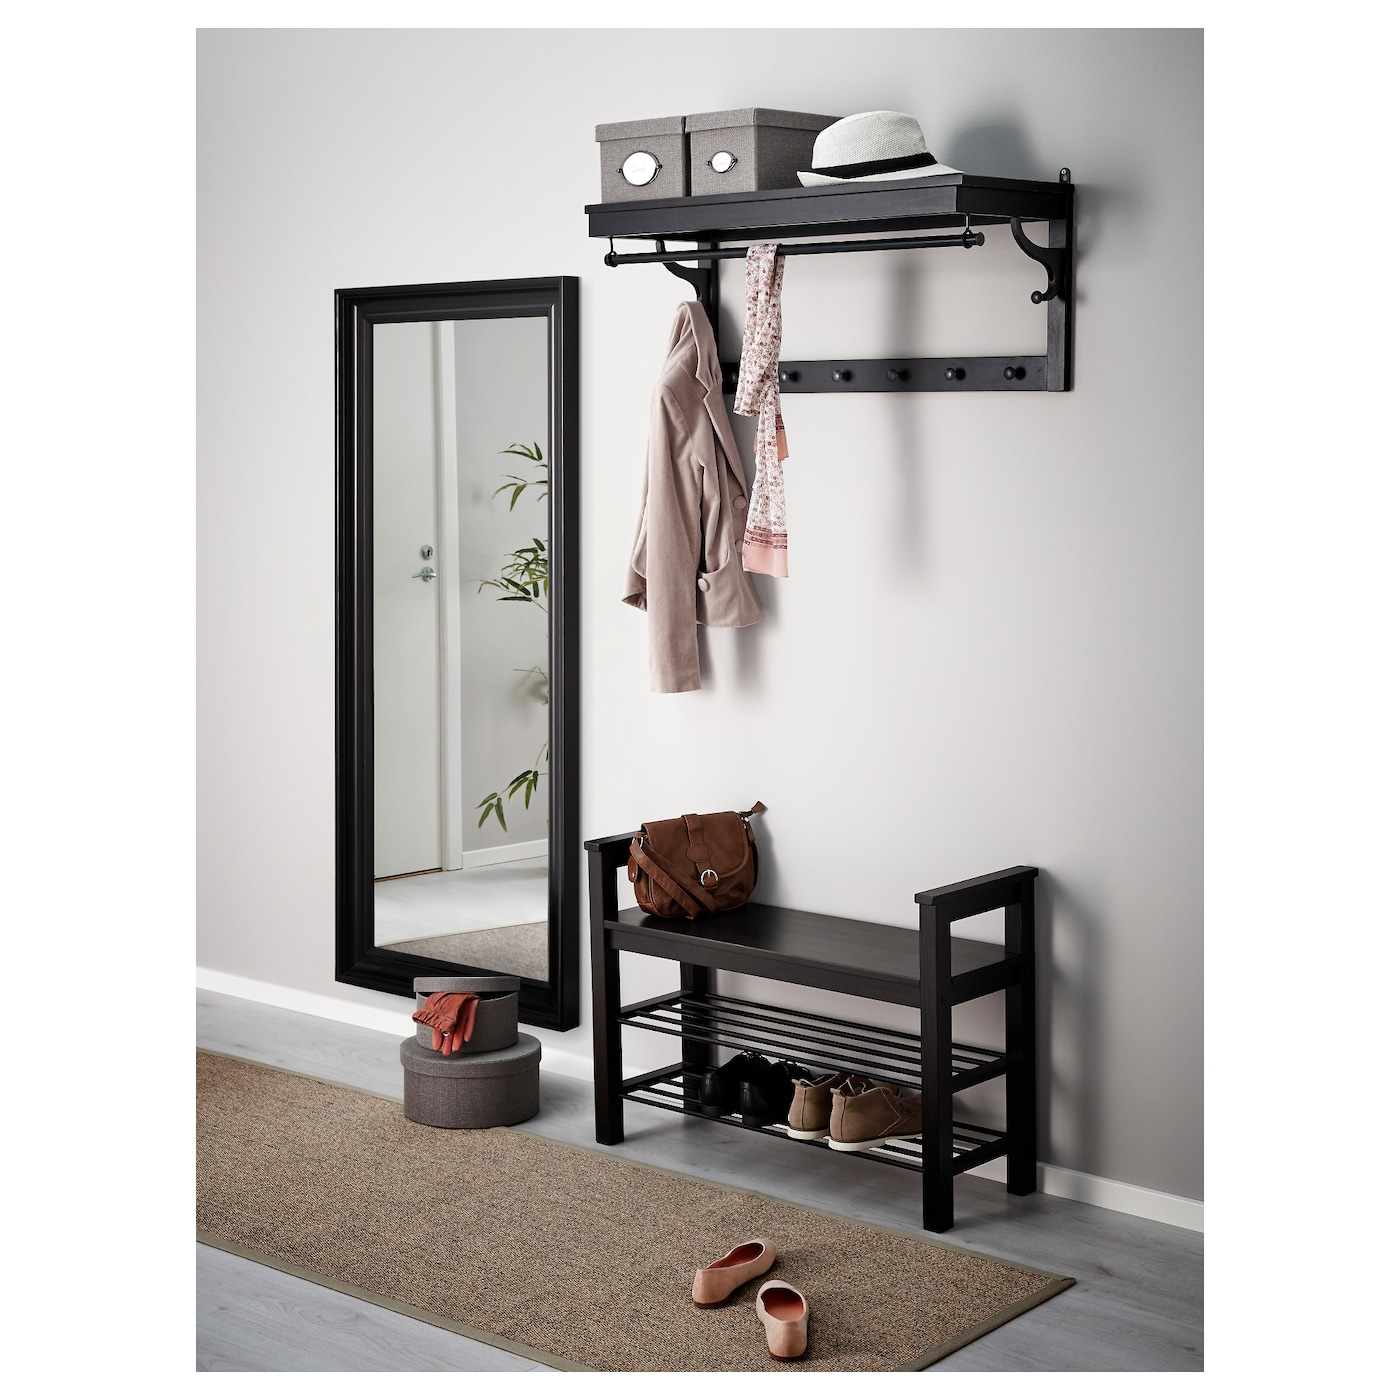 hemnes spiegel zwartbruin 74x165 cm ikea. Black Bedroom Furniture Sets. Home Design Ideas